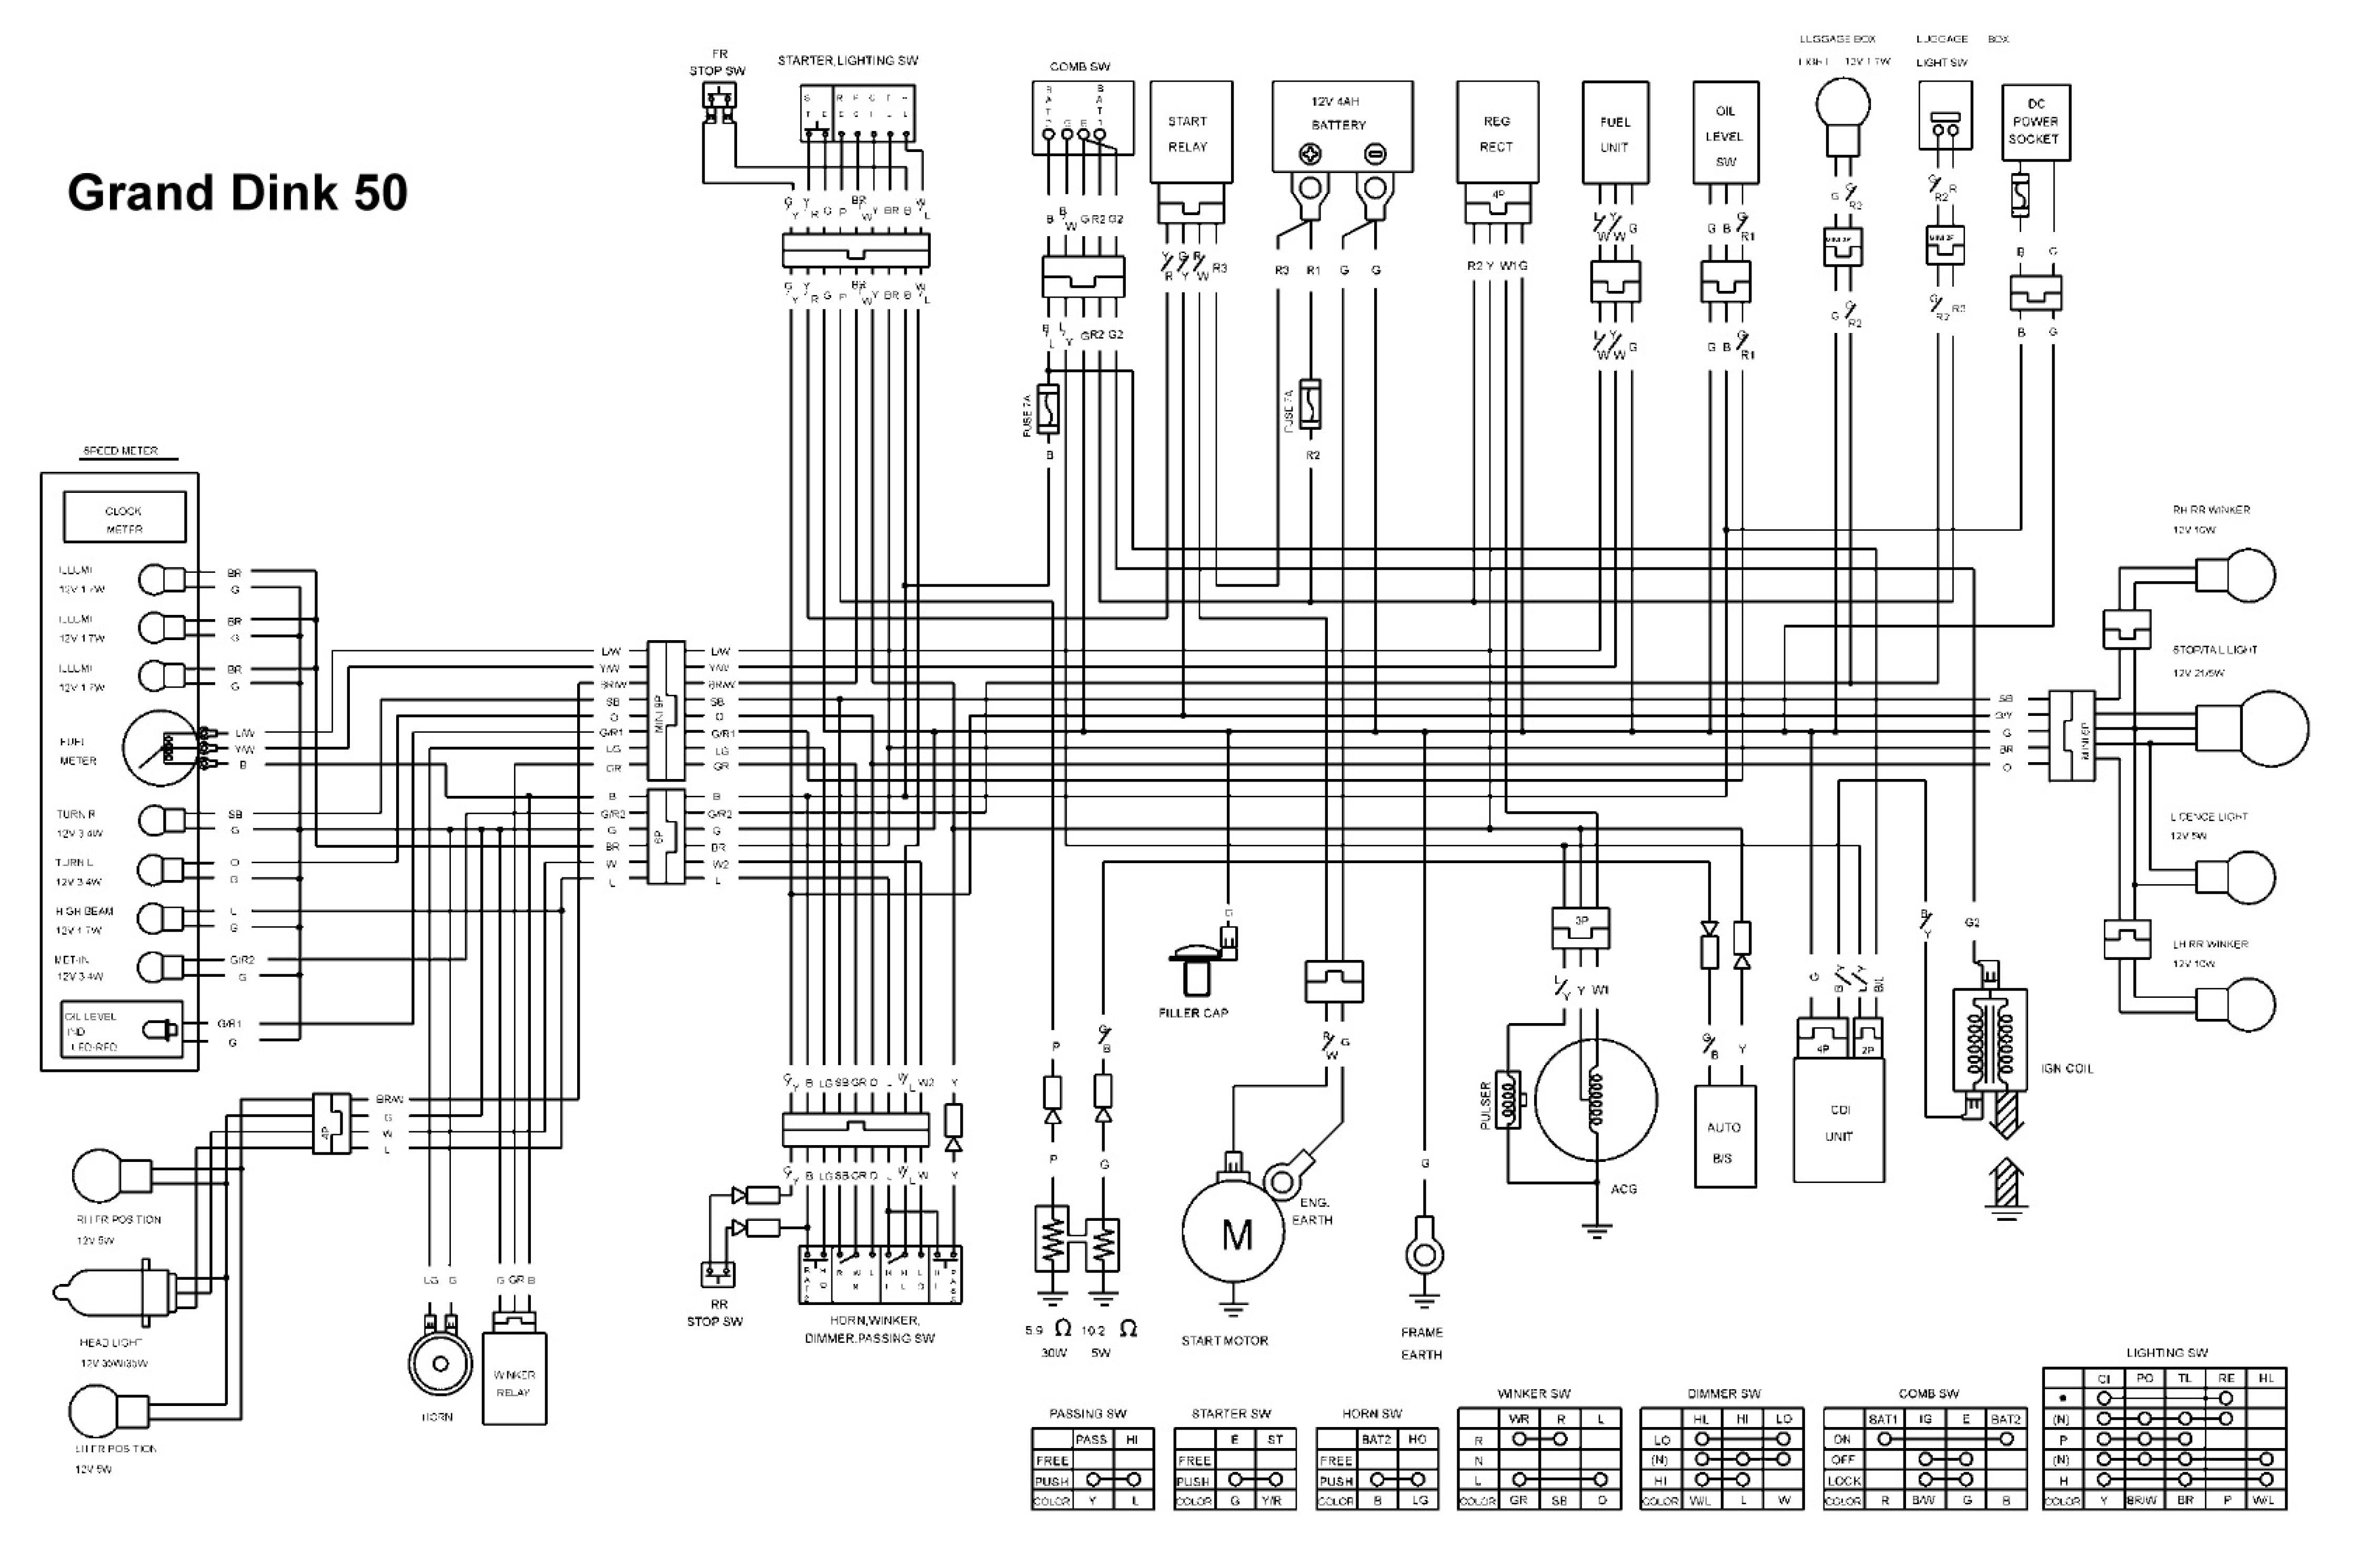 Kymco Agility 50 Wiring Diagram Webtor Me And Diagram, Wire, 50th,  Electrical Cable